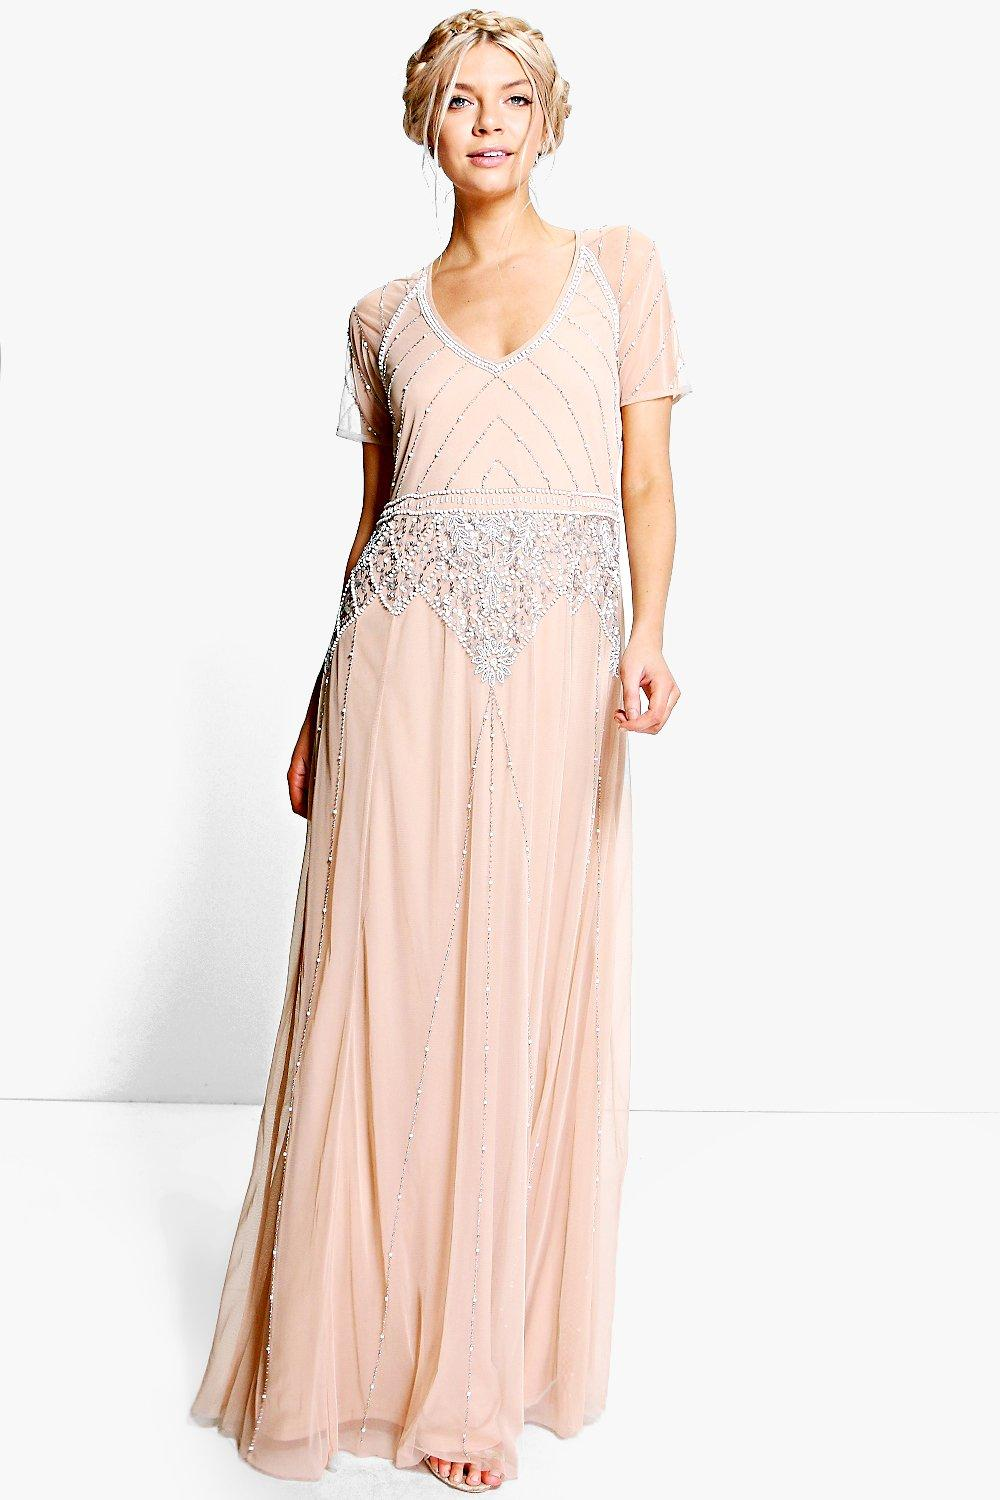 1930s Dresses | 30s Art Deco Dress Womens Boutique Beaded Cap Sleeve Maxi Bridesmaid Dress - Beige - 10 $28.00 AT vintagedancer.com